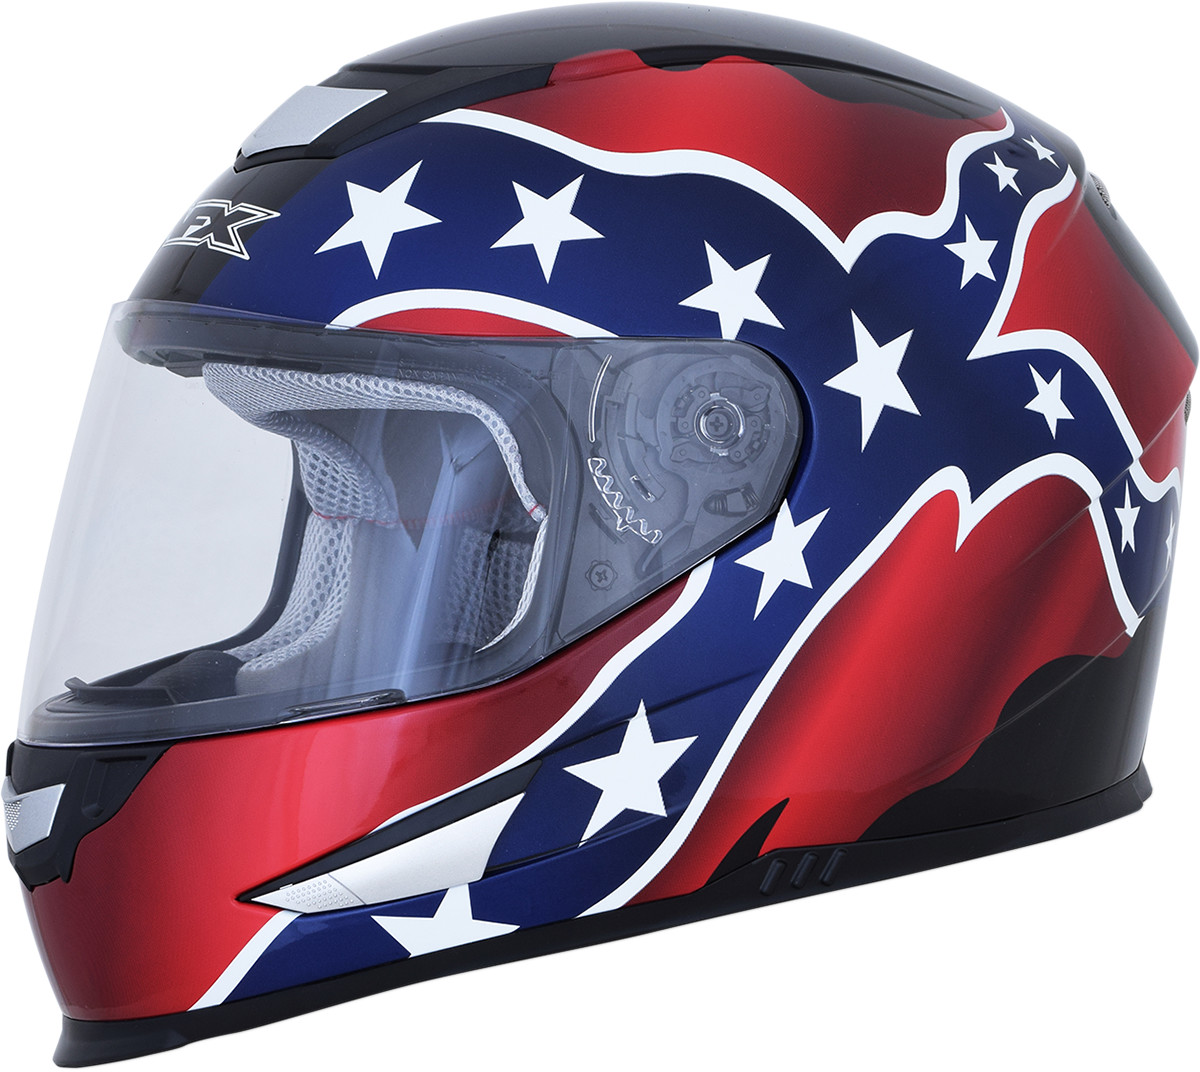 AFX FX-99 Flag Full Face Motorcycle Street Helmet Adult All Sizes and Colors